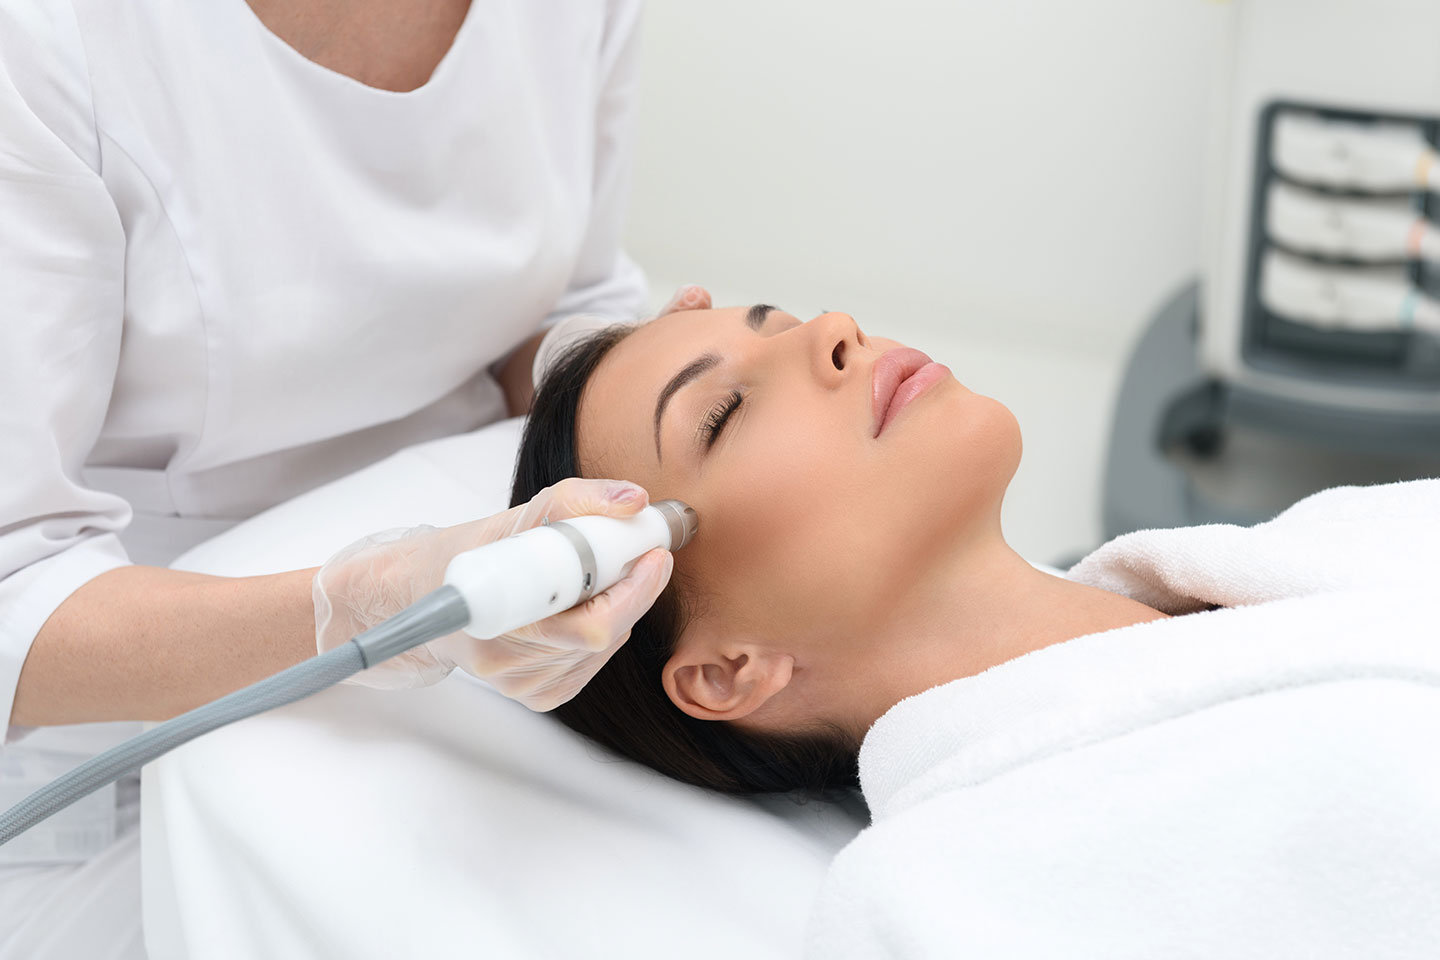 injectables and facial treatments lead the medical spa growth